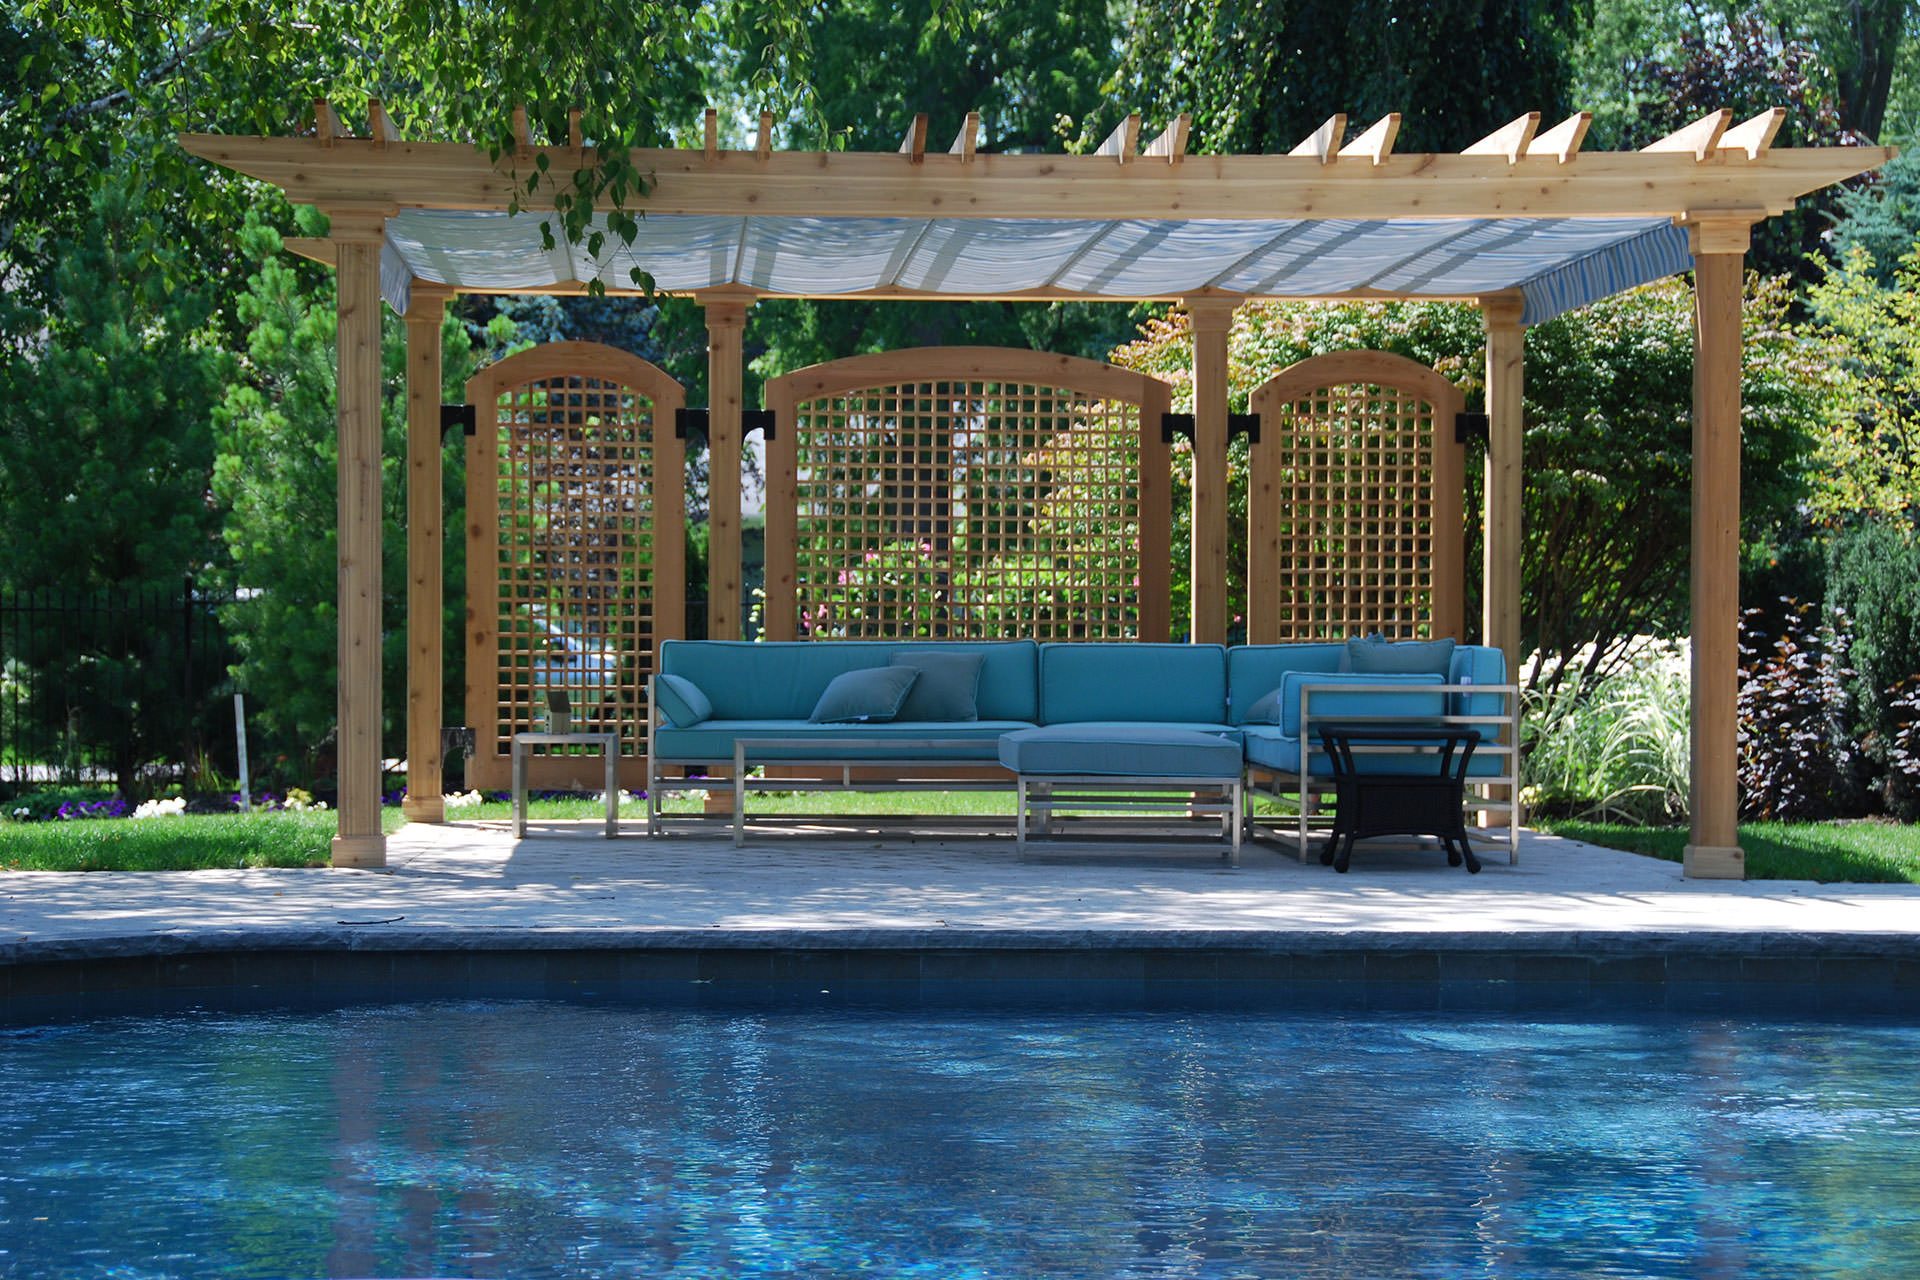 Pool Shade Ideas 7 Ways To Cover Your